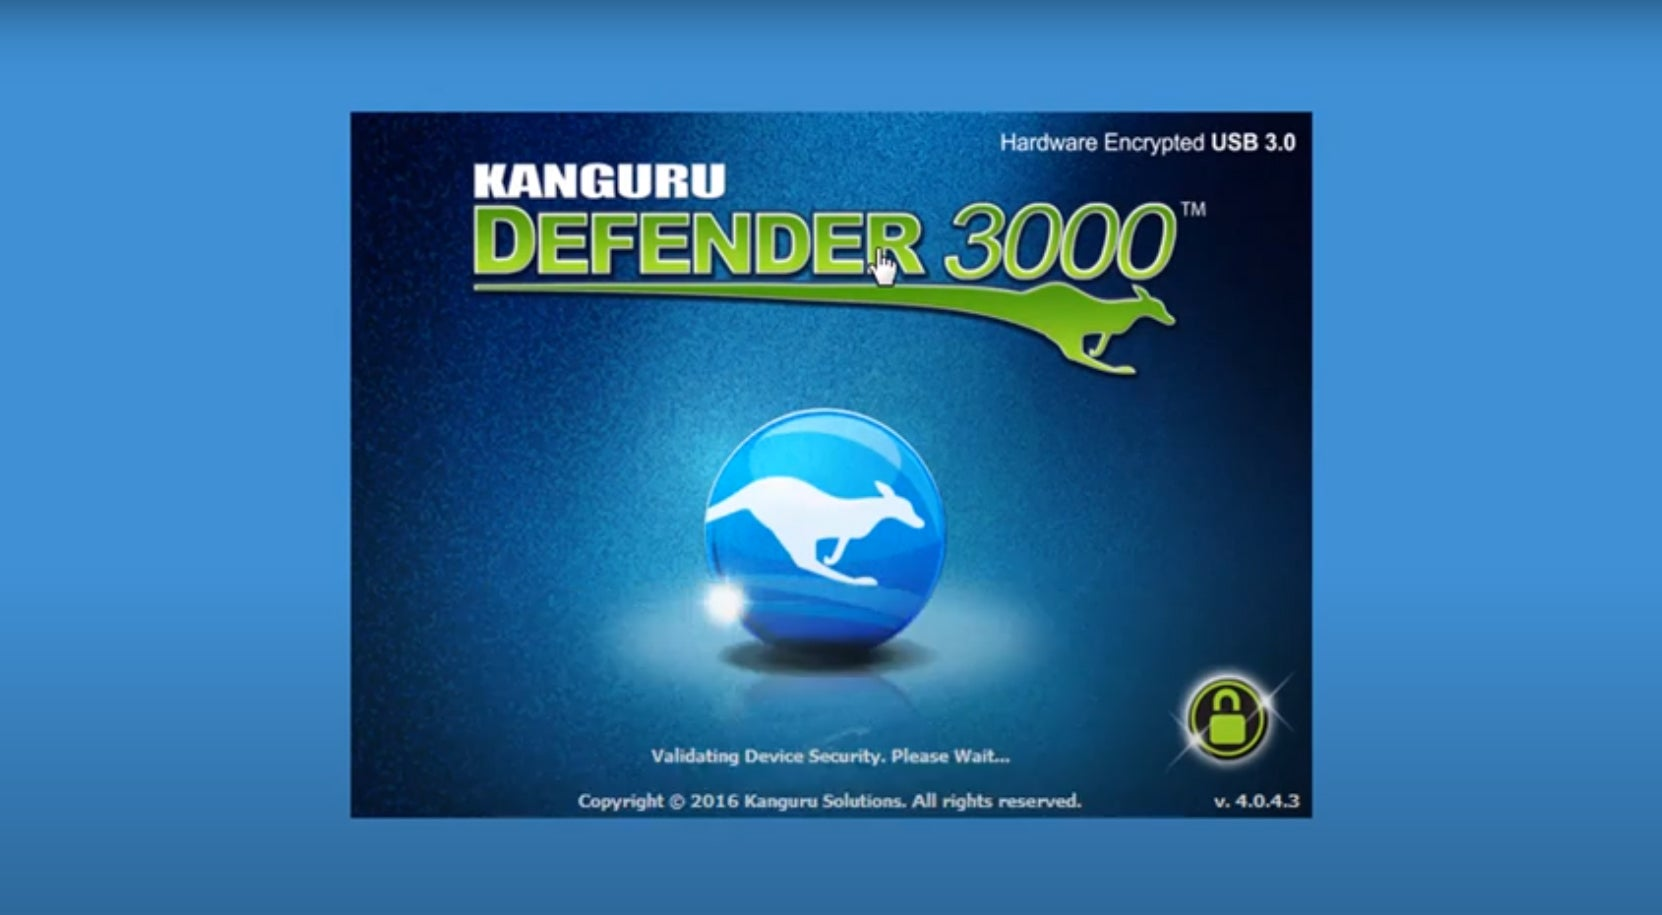 6. How to Easily Login and Logout of Your Kanguru Defender Secure Drive